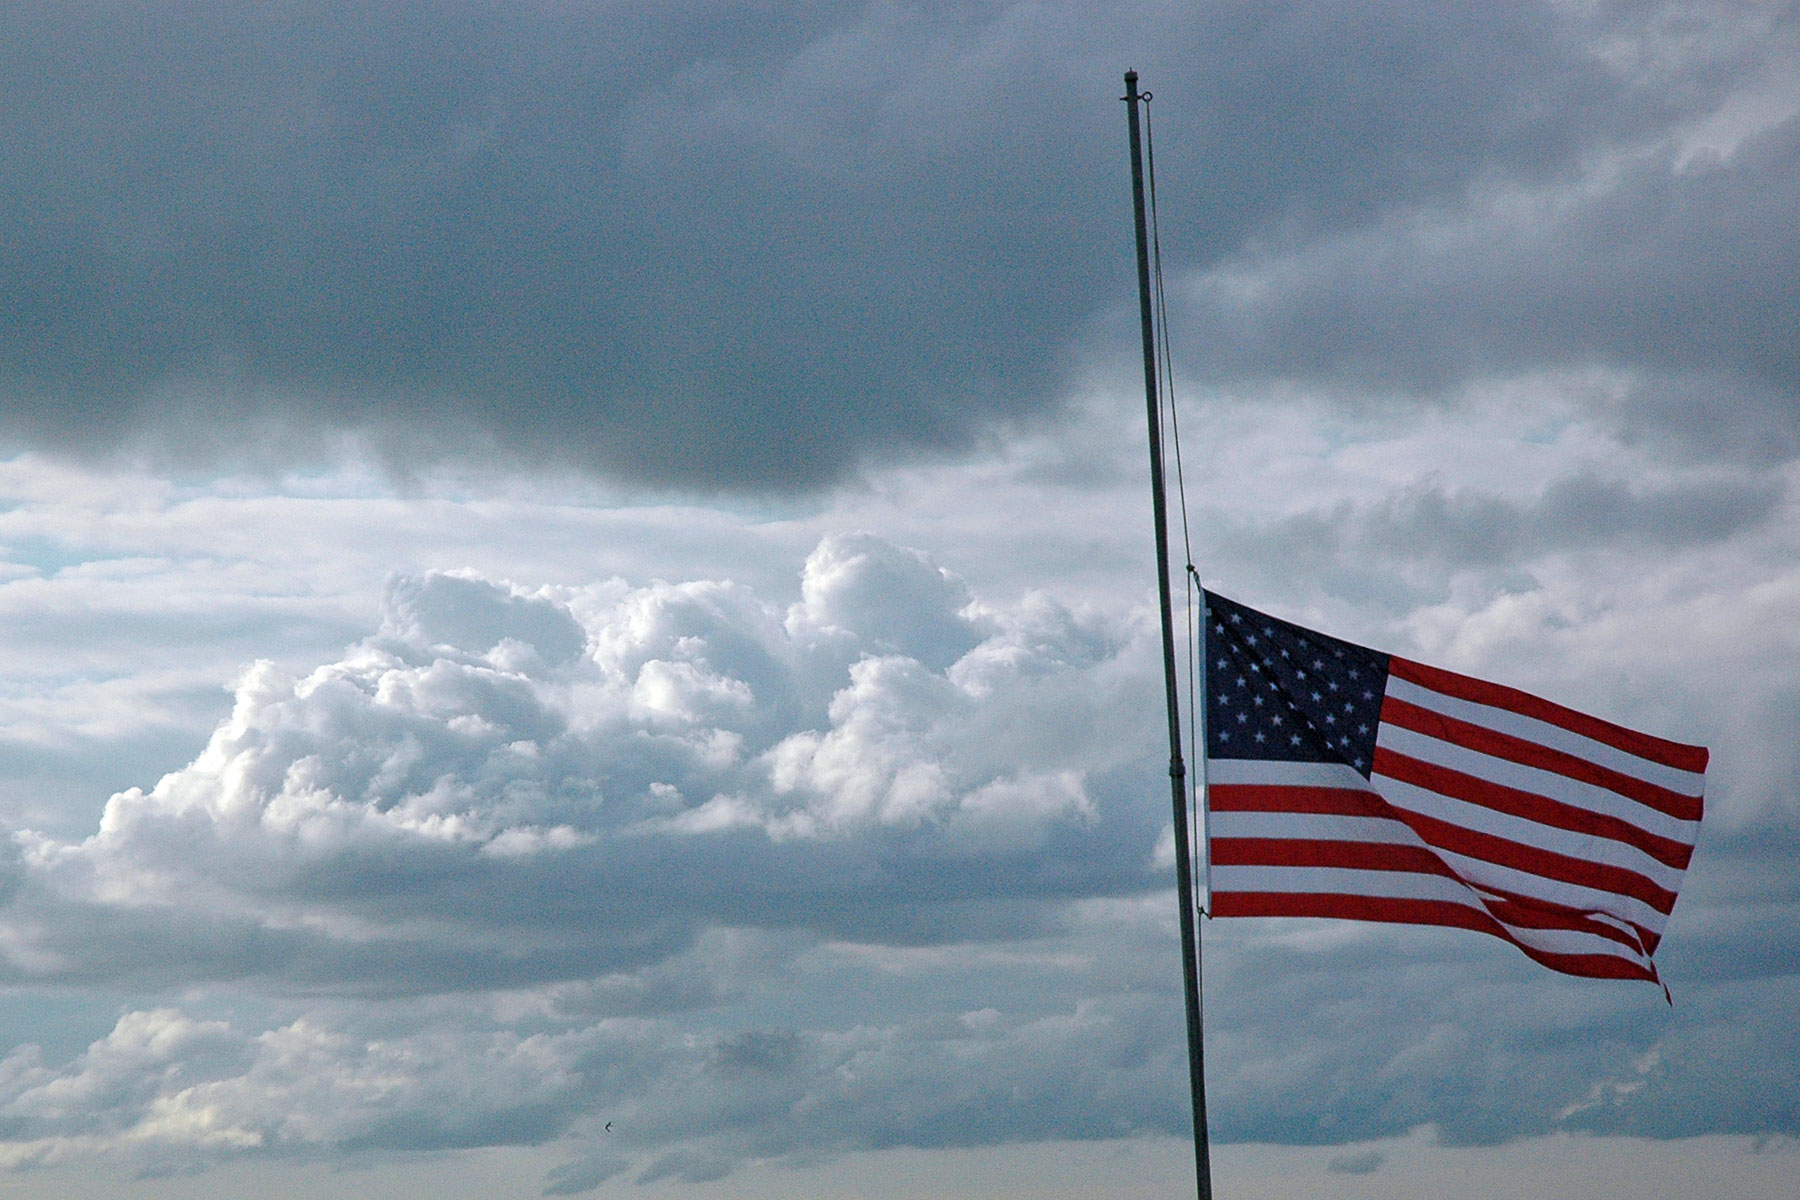 When the Banner Remains at Half-Staff